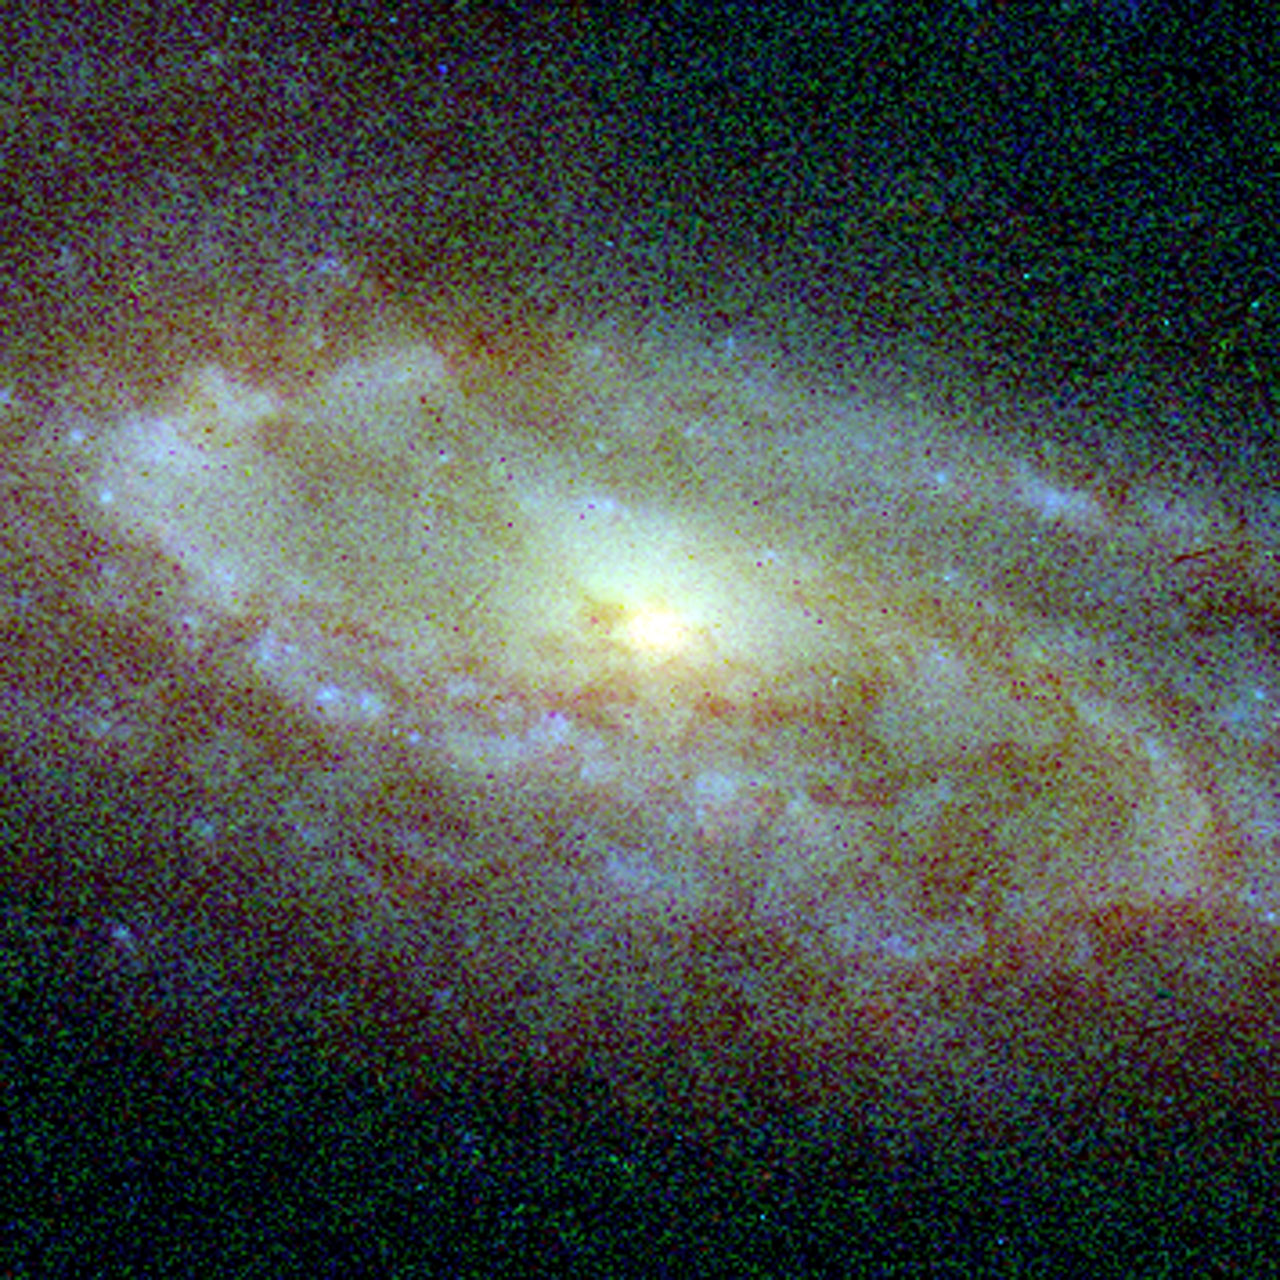 Central Bulges of Spiral Galaxies- NGC 7537 (Hubble NICMOS and WFPC2 View)